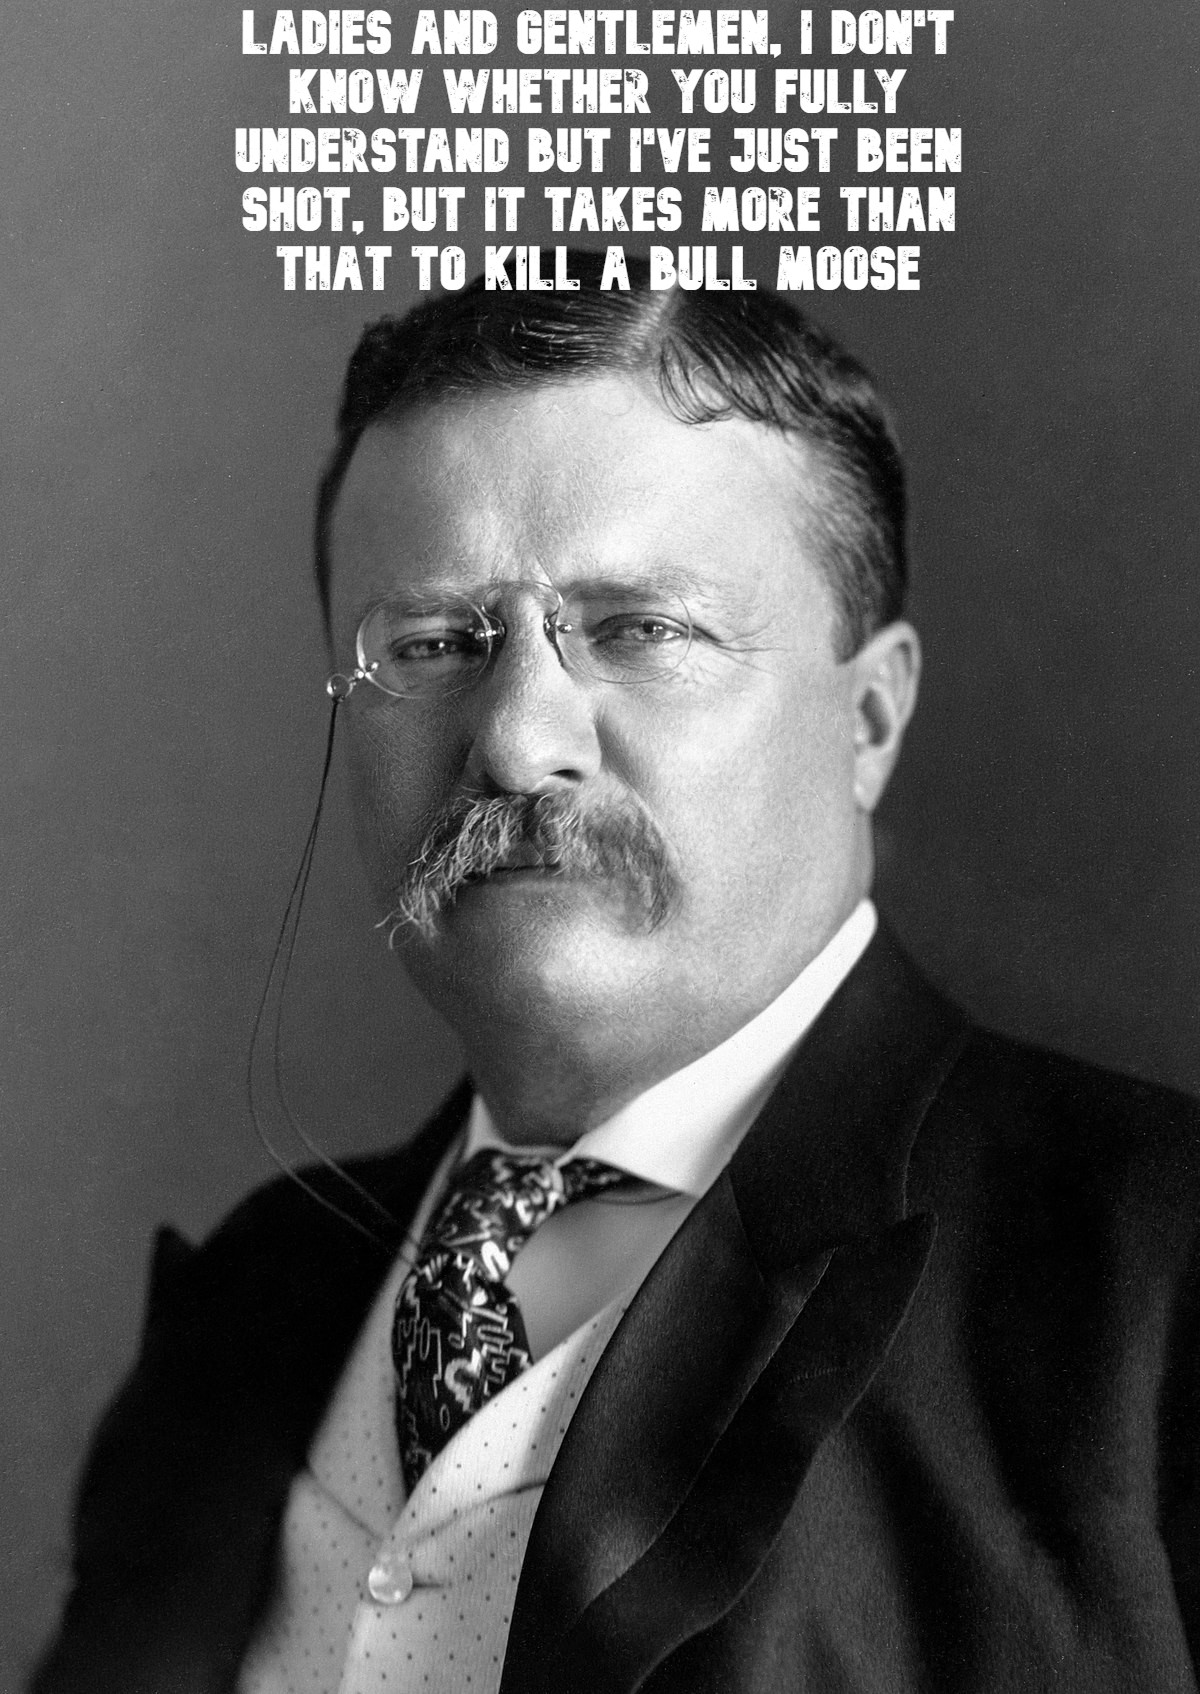 """I've just been shot, but it takes more than that to kill a bull moose"" – Teddy Roosevelt, after he was shot in the chest and proceeded to give a 90 minute speech with the bullet lodged in his chest [1200 x 1694]"